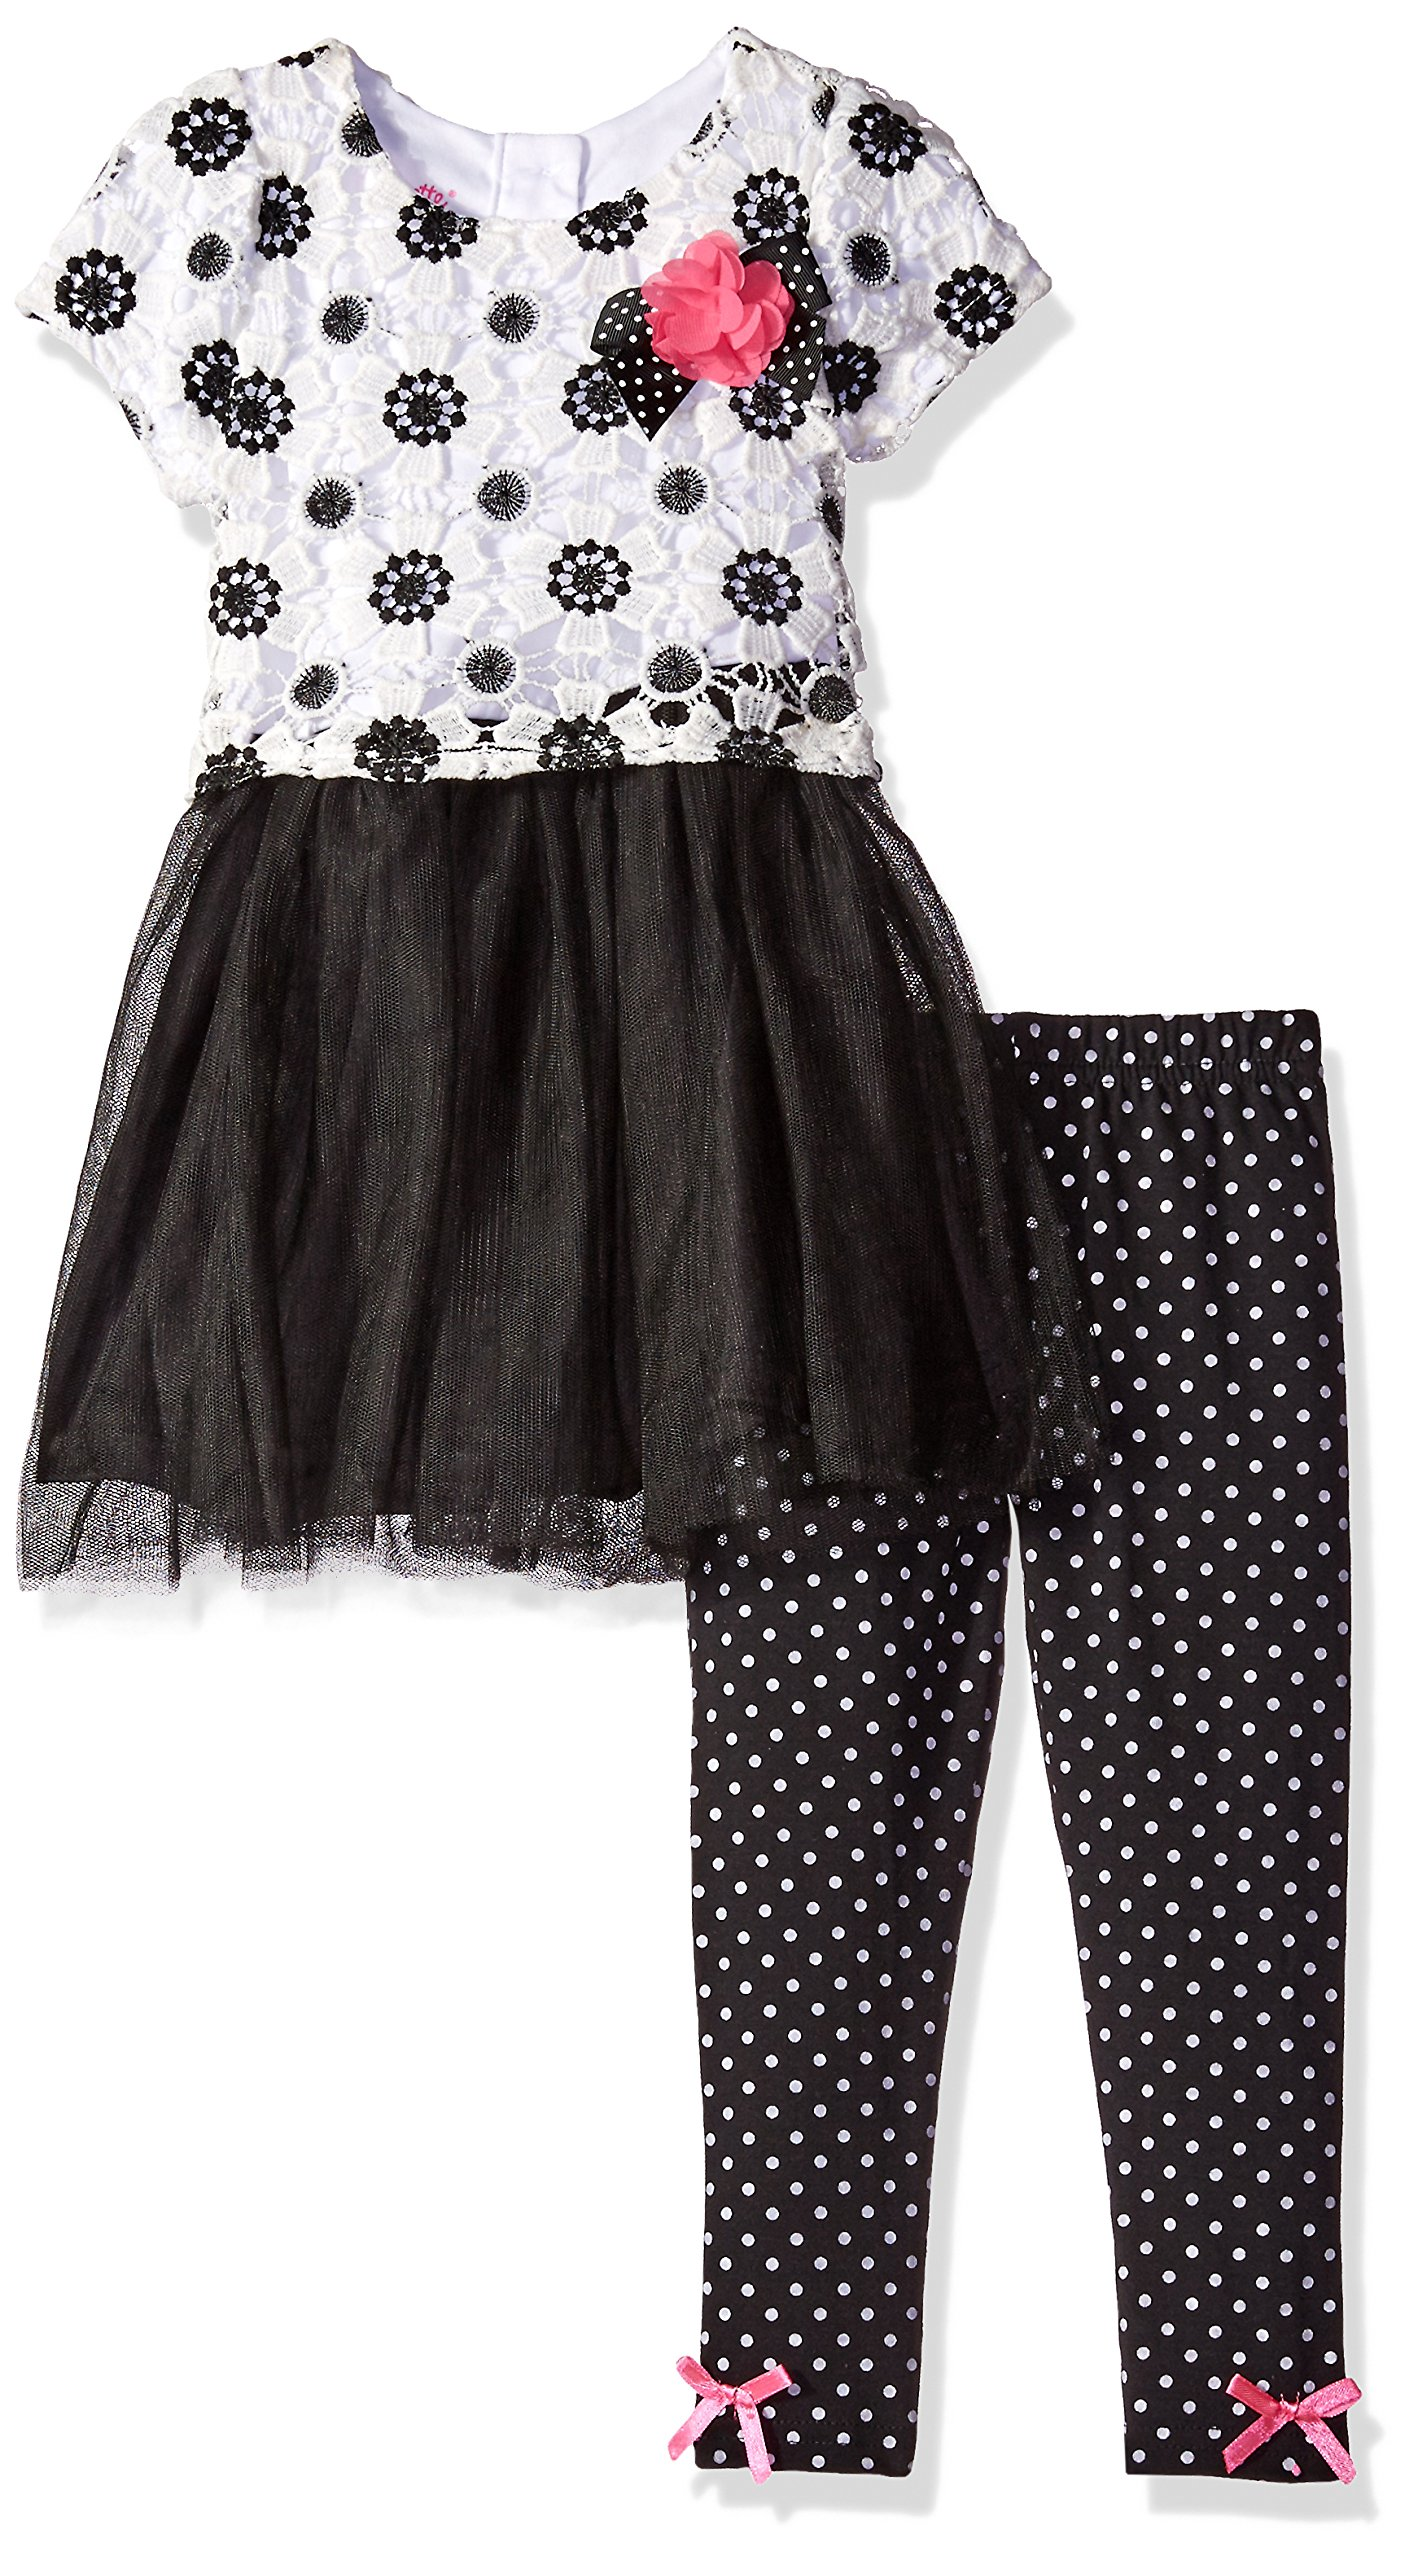 Nannette Little Girls' Toddler 2 Piece Fashion Legging Set with Crochet Lace Overlay, White, 2T